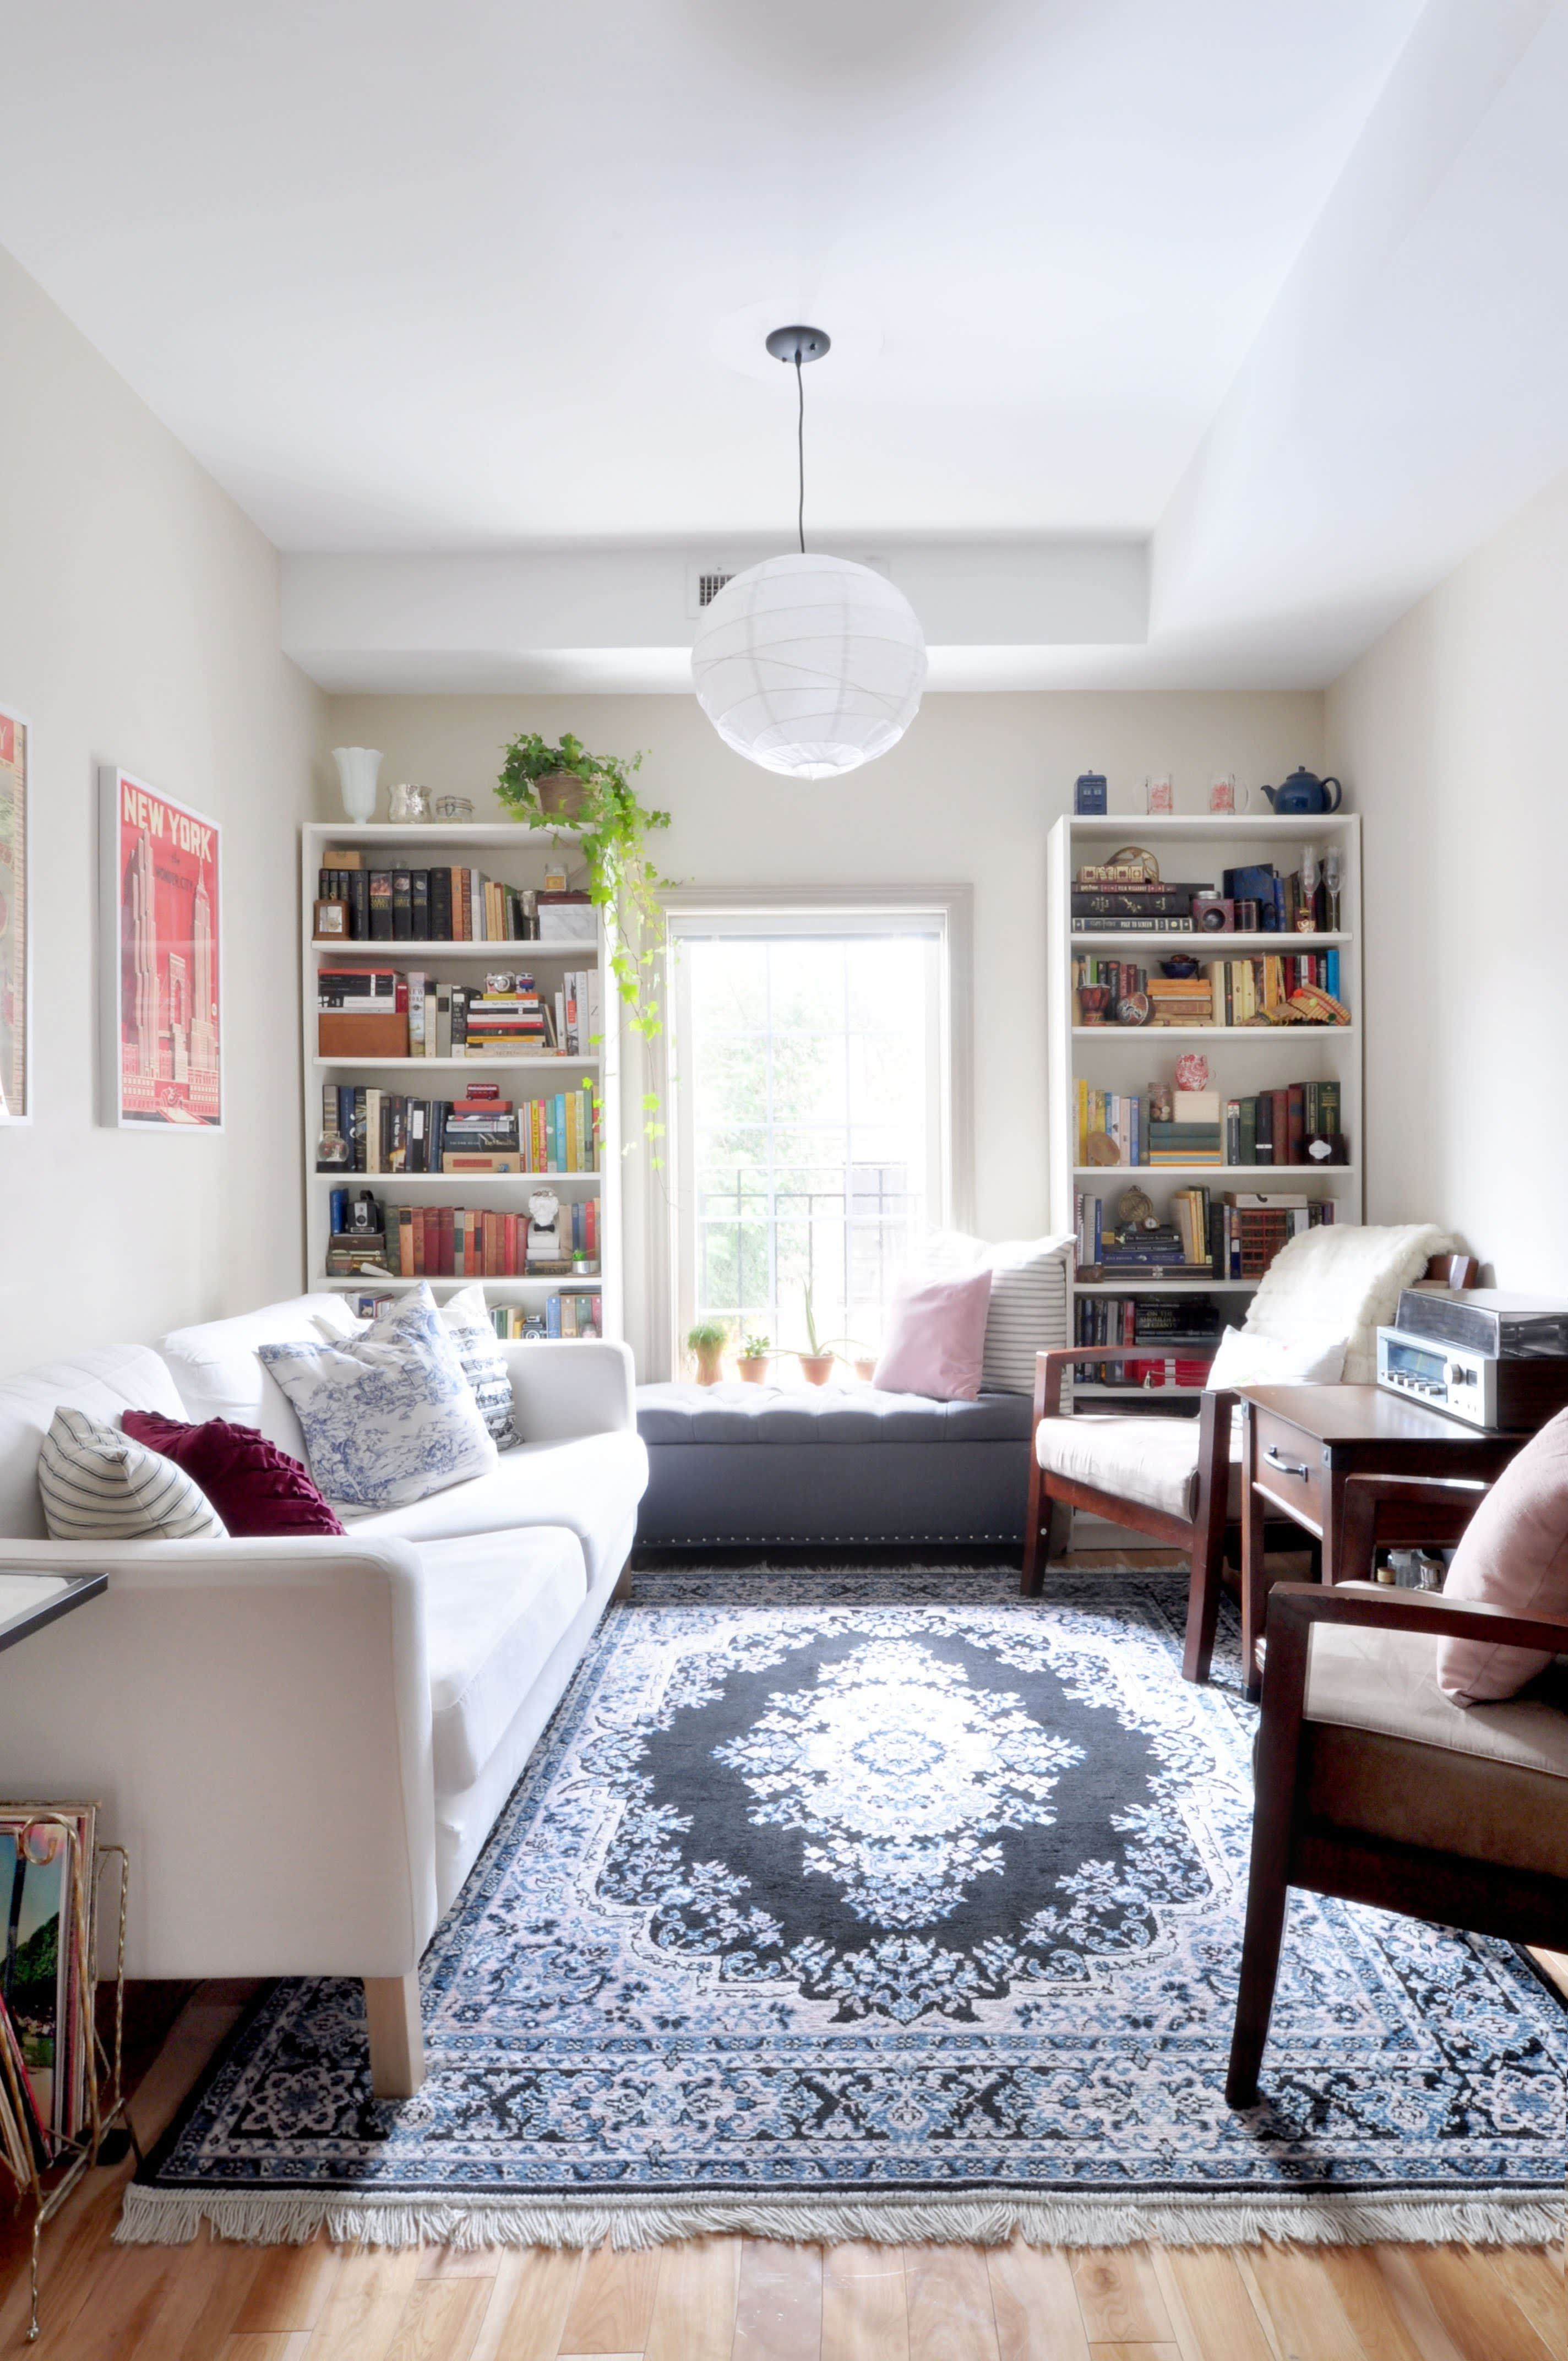 Small Narrow Living Room Decorating Ideas: 7 (Seemingly) Counterintuitive Tricks That Make Small